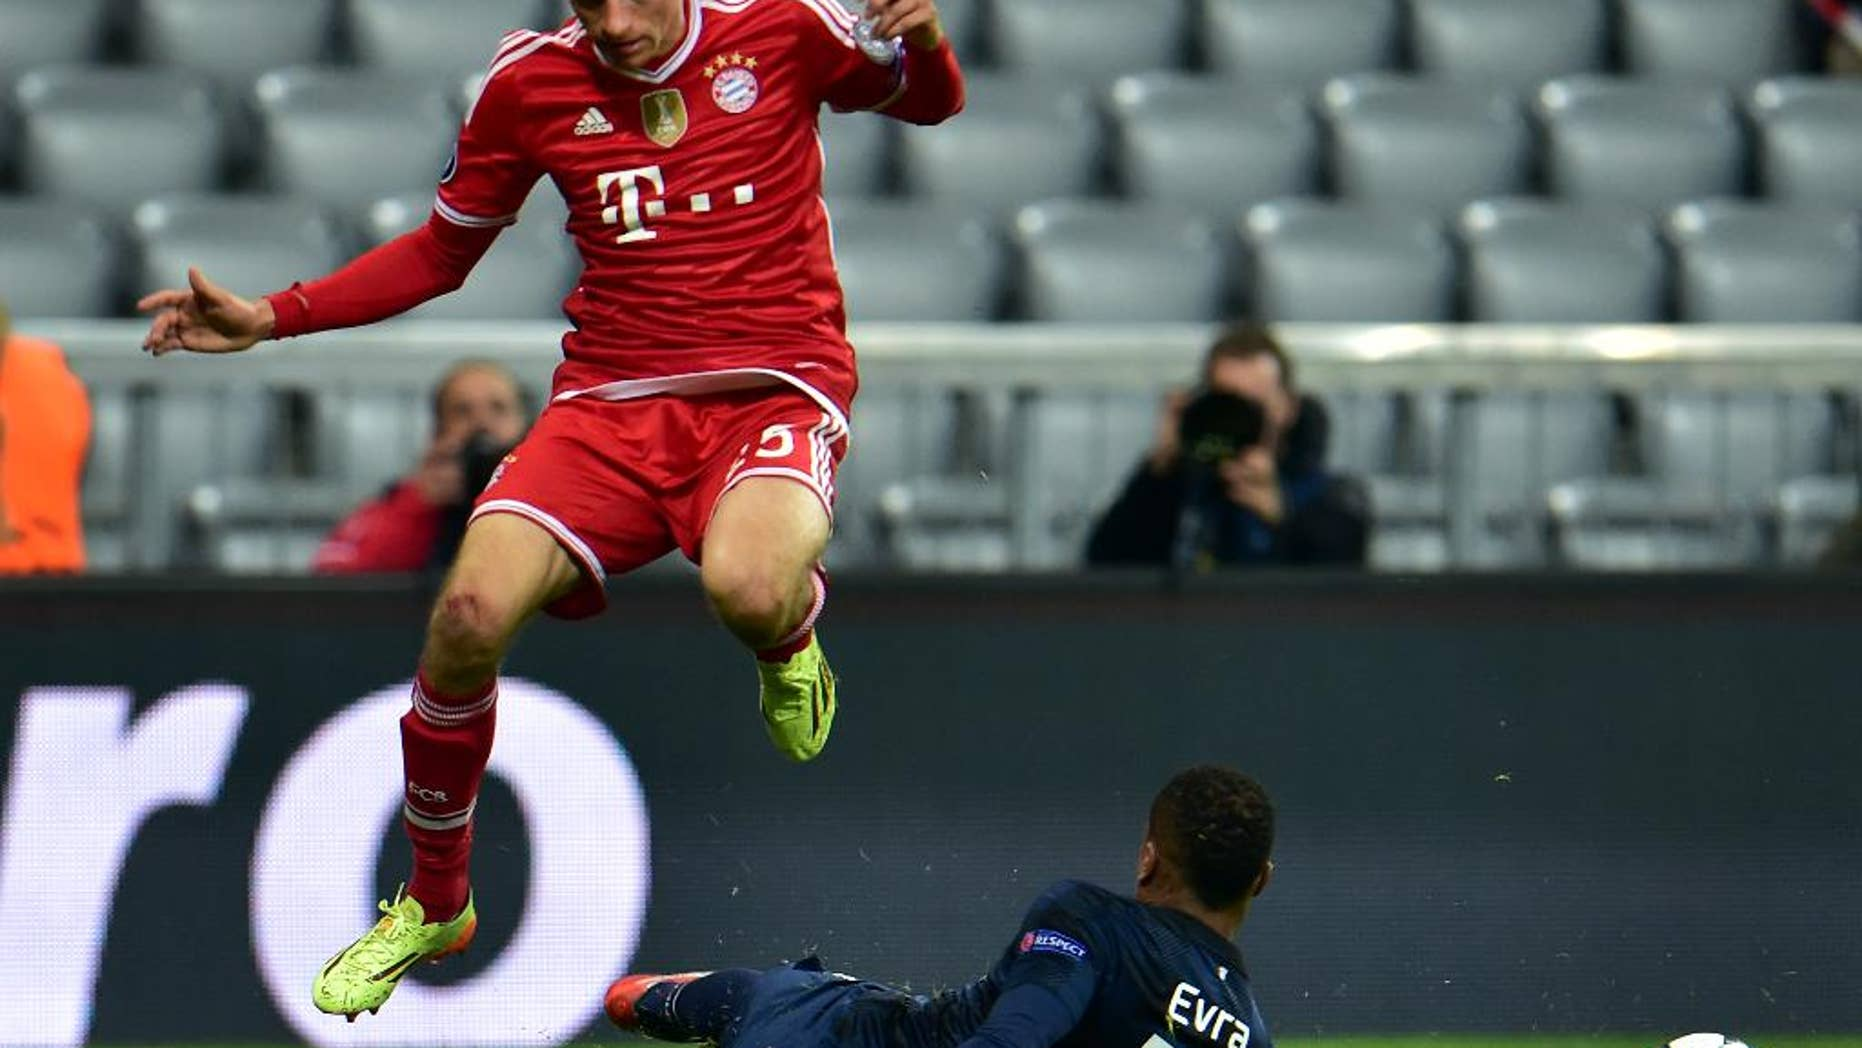 Bayern's Thomas Mueller, left, and Manchester United's Patrice Evra, right, challenge for the ball during the Champions League quarterfinal second leg soccer match between Bayern Munich and Manchester United in the Allianz Arena in Munich, Germany, Wednesday, April 9, 2014. (AP Photo/Kerstin Joensson)